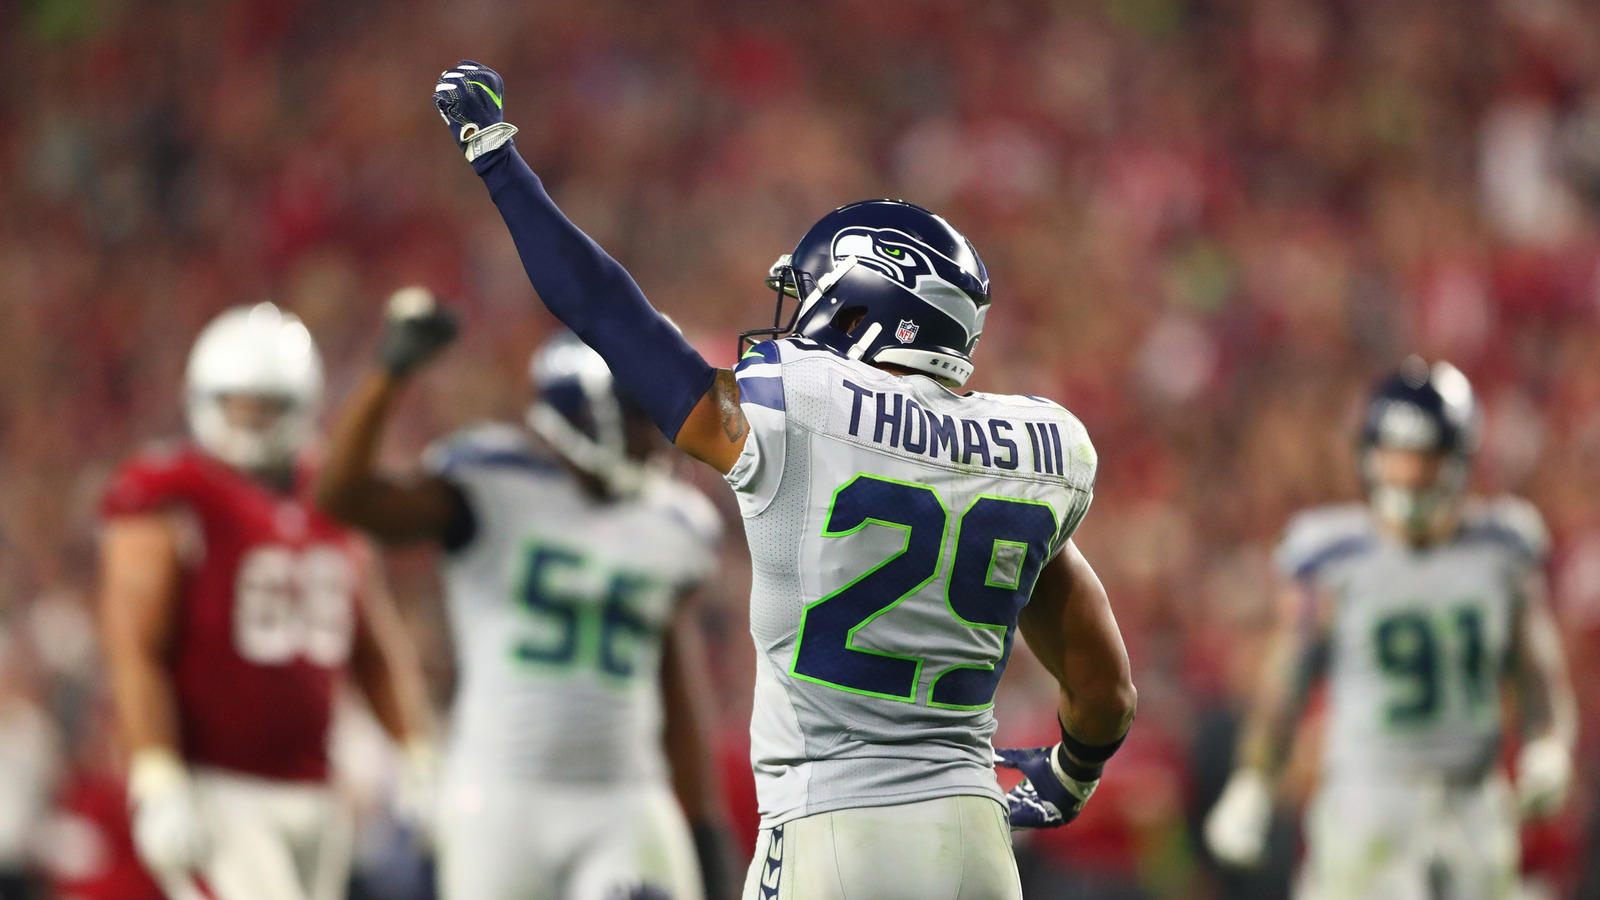 All Pro Seahawks safety Earl Thomas mits to playing in 2017